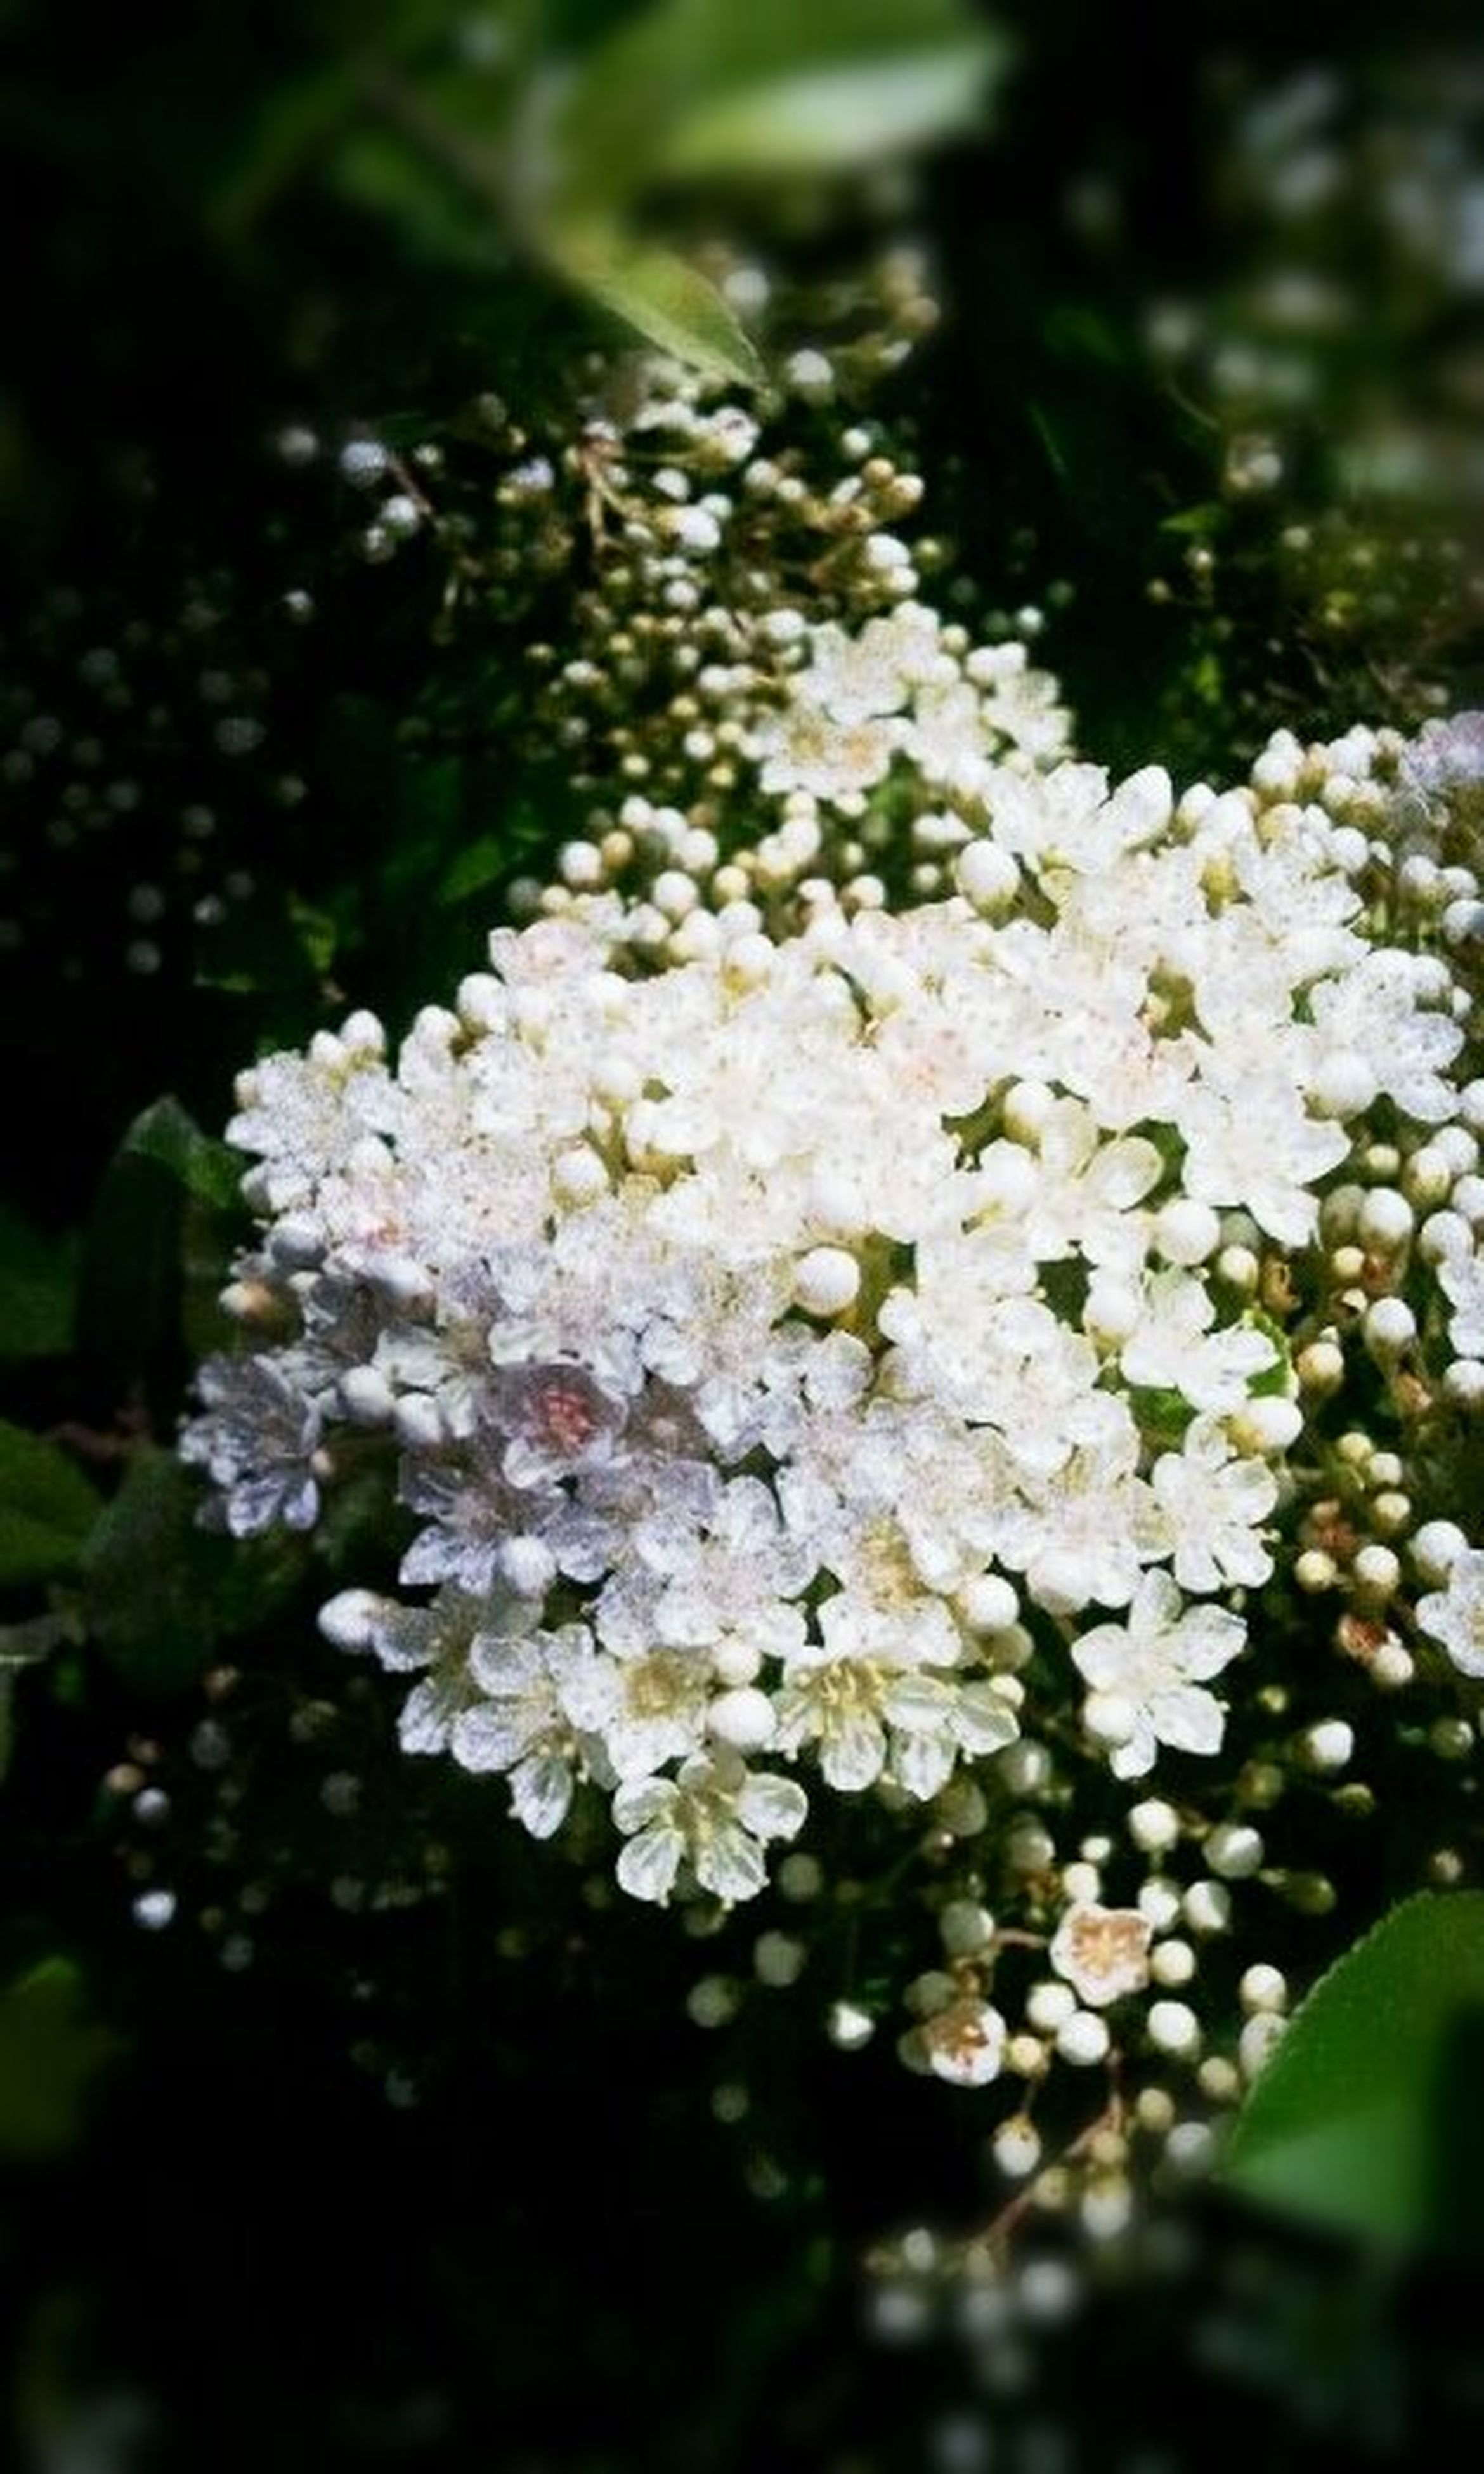 flower, freshness, growth, petal, fragility, white color, beauty in nature, nature, blooming, focus on foreground, close-up, flower head, plant, in bloom, blossom, park - man made space, tree, selective focus, outdoors, springtime